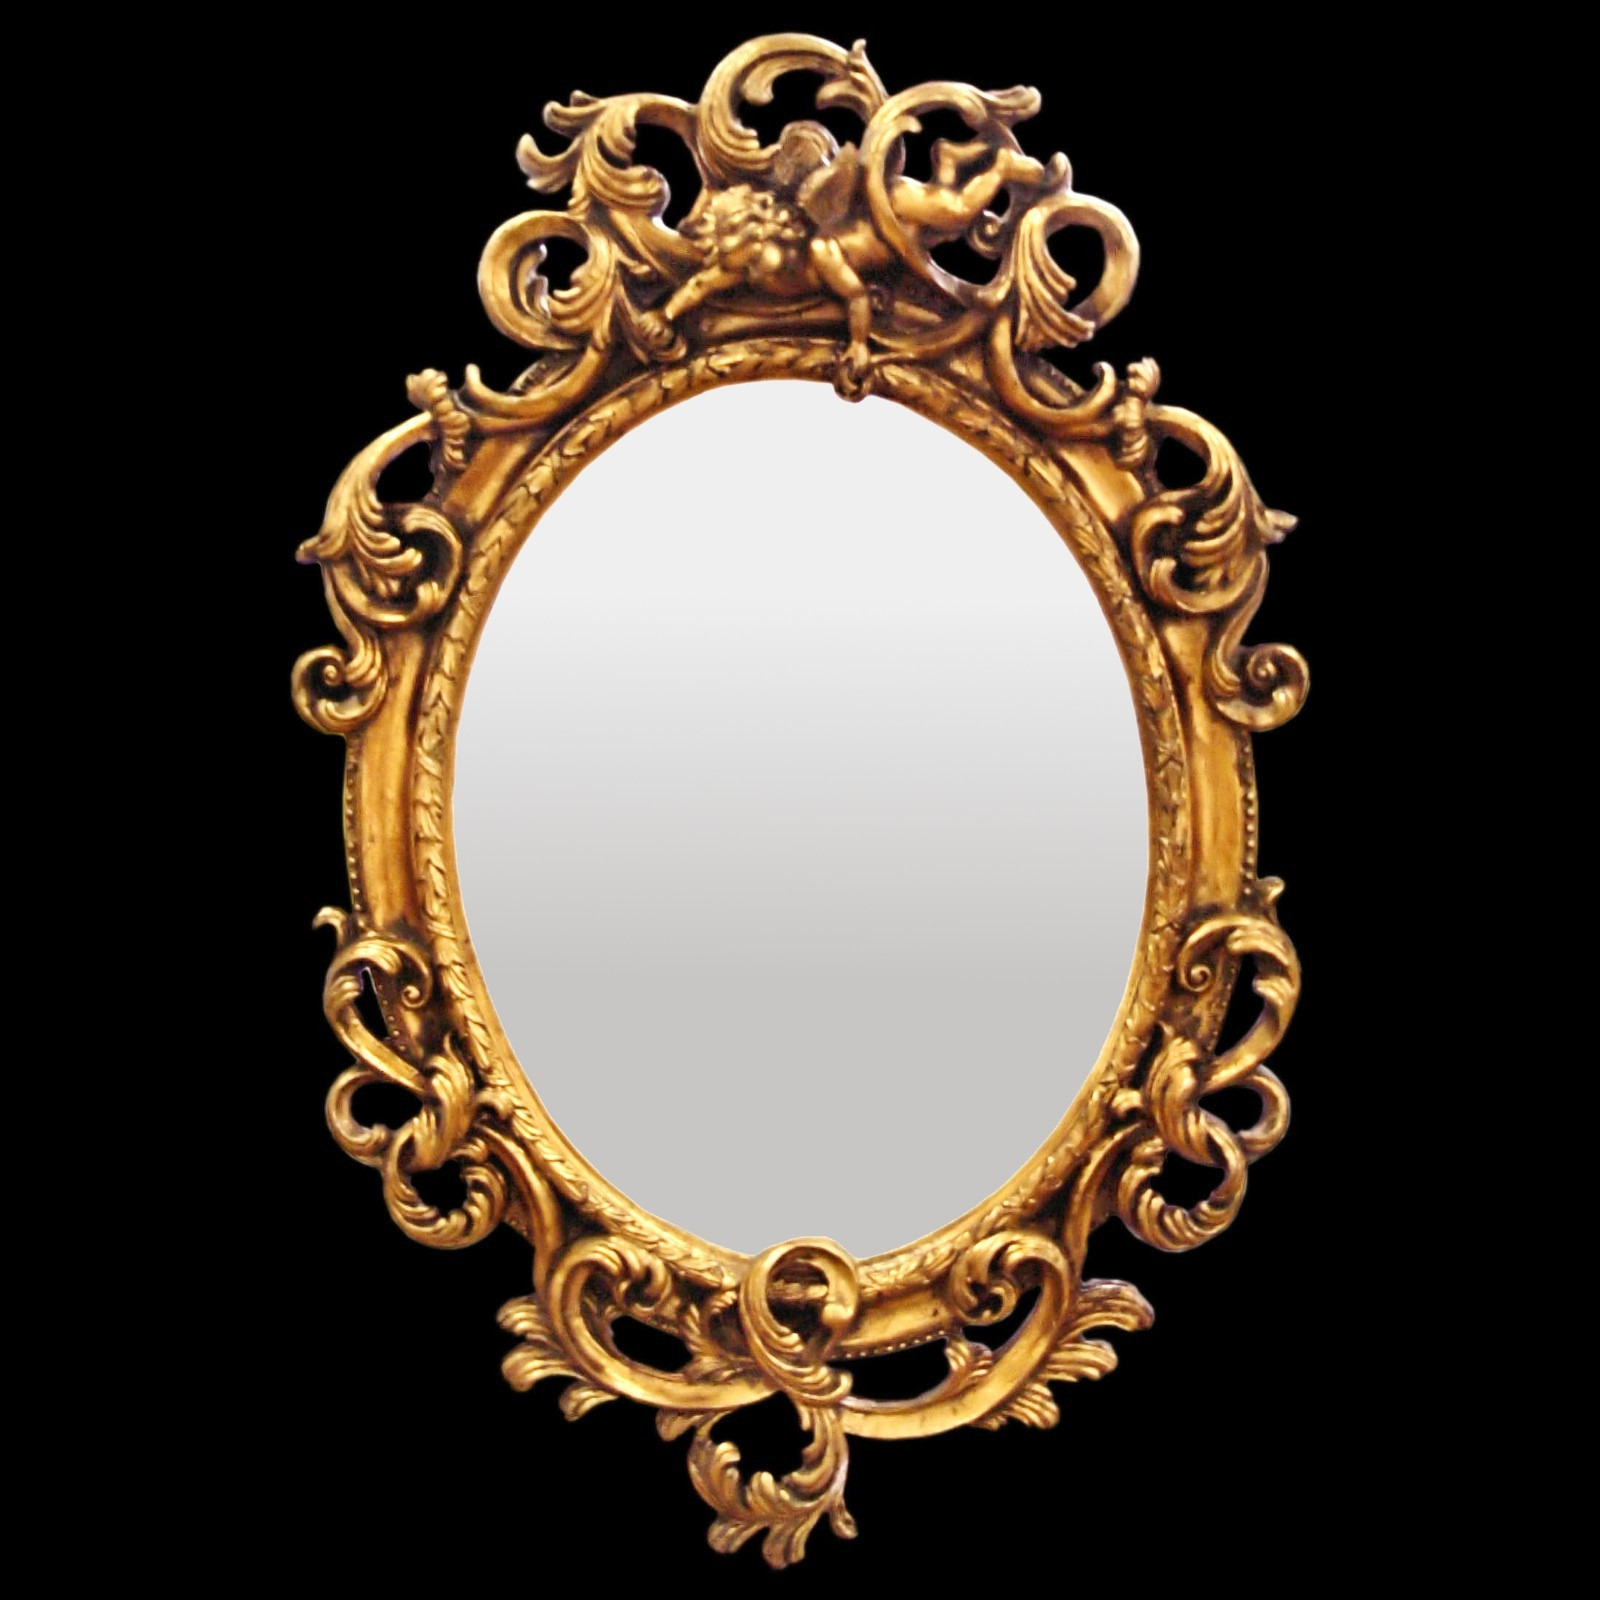 Bathroom Mirror Oval Wall Mirror Baroque De Luxe Gold Acanthus In Baroque Gold Mirror (Image 8 of 15)